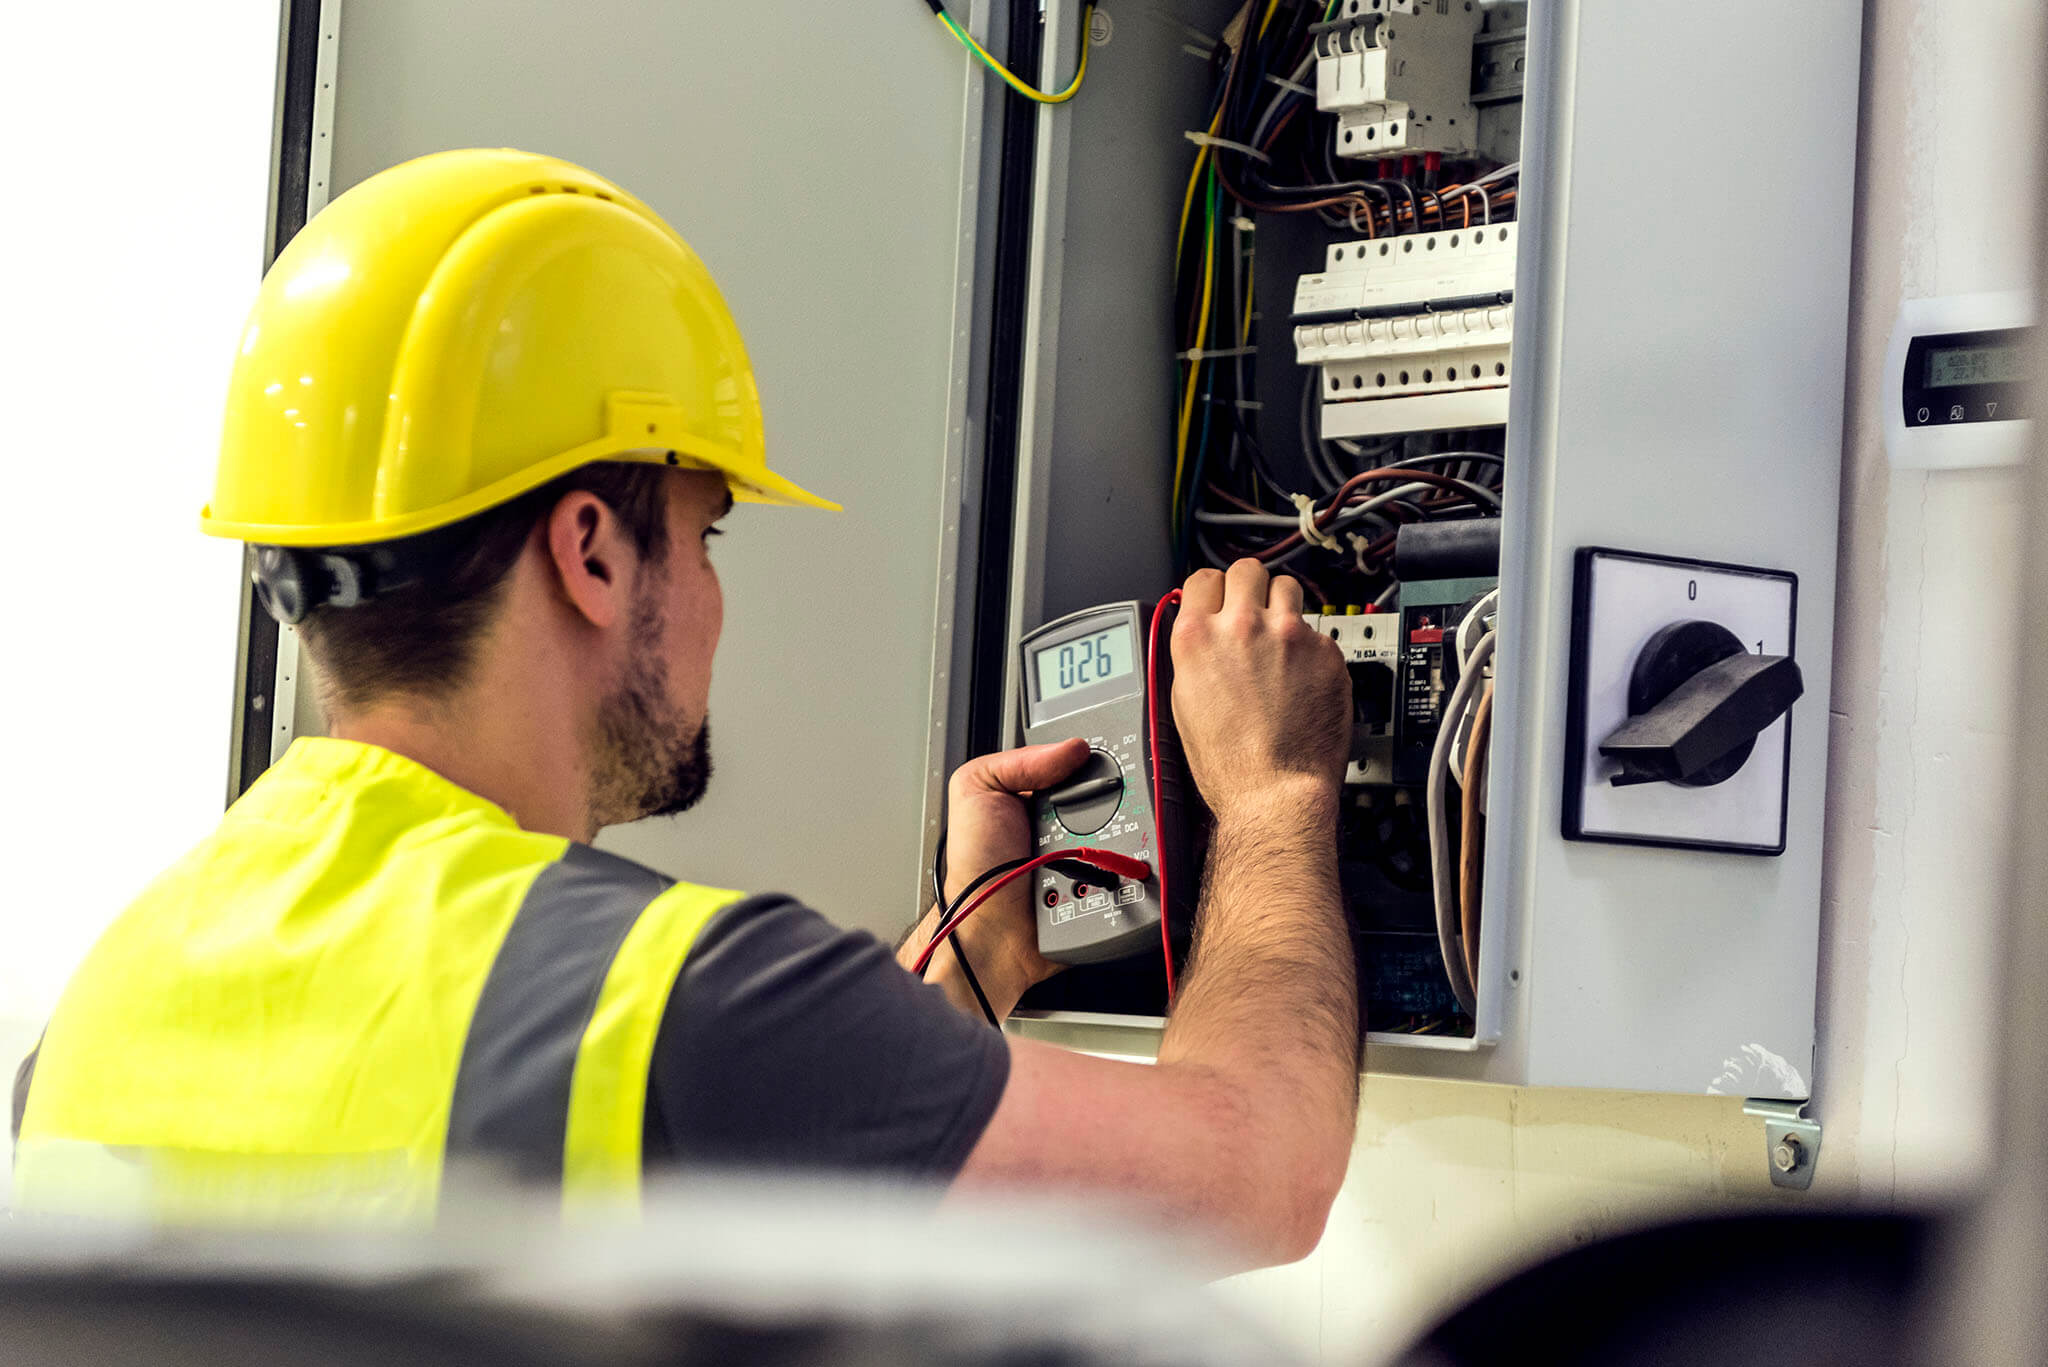 Industrial Control Systems - electrician engineer worker